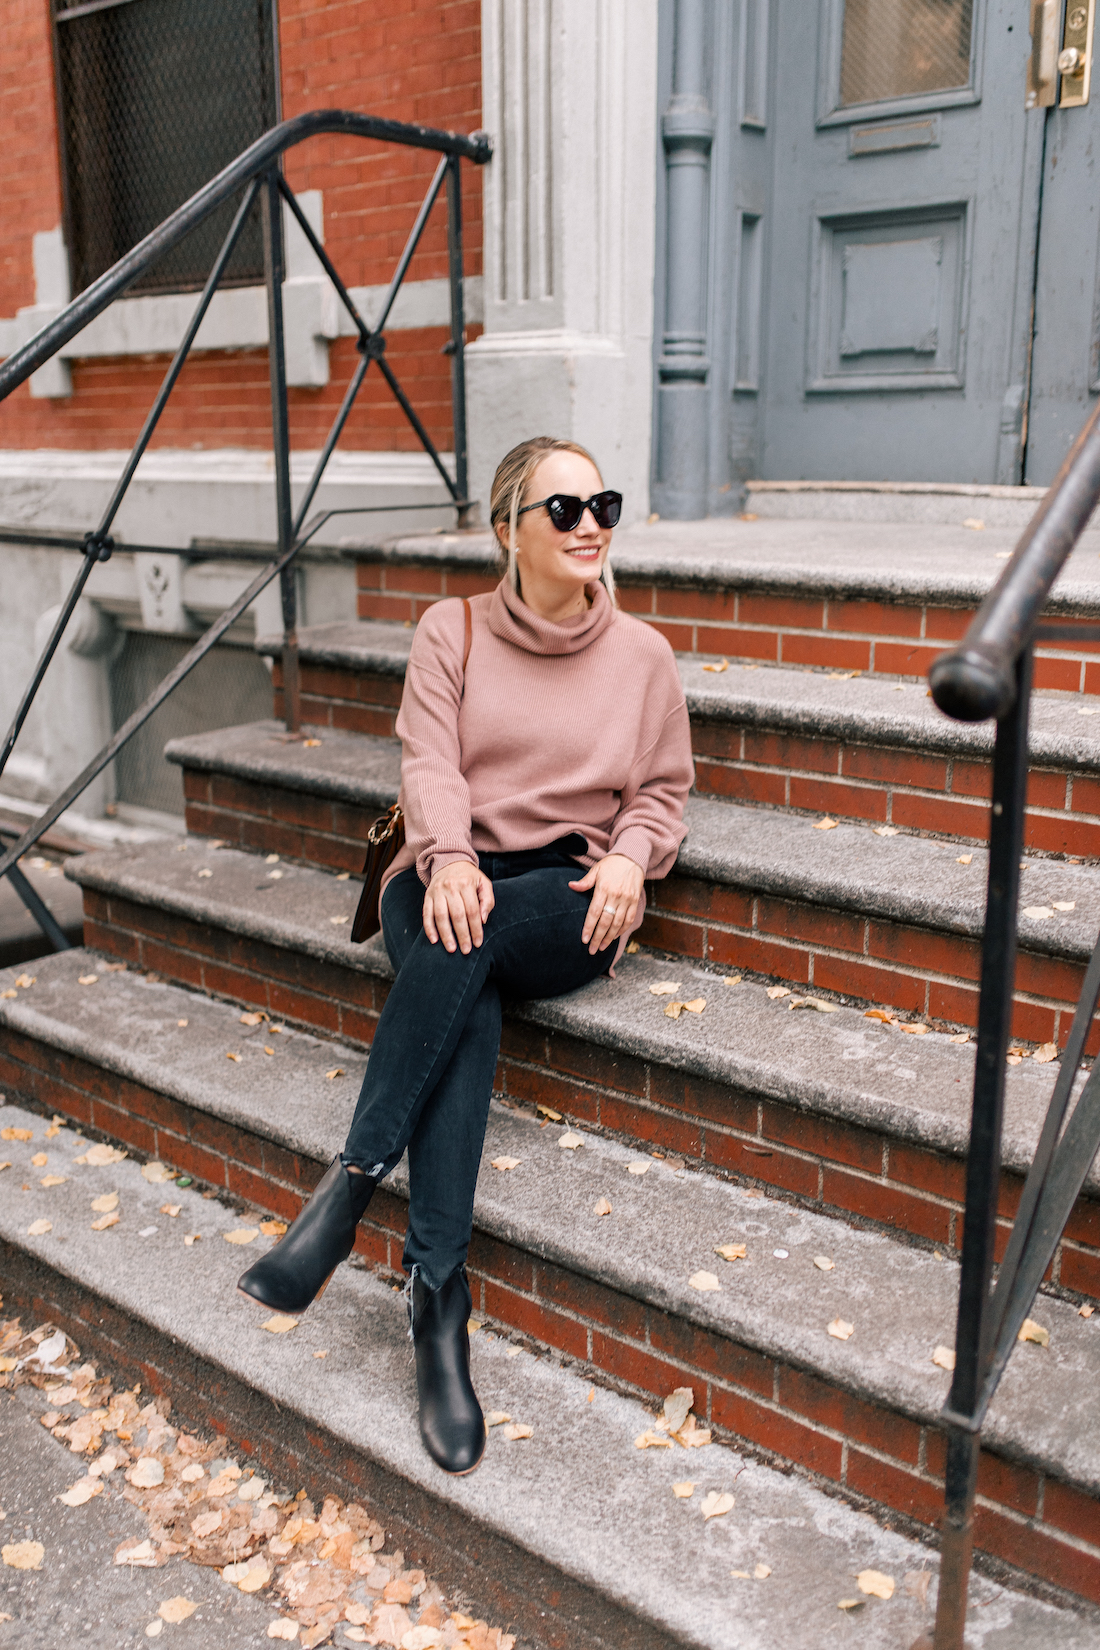 Free People Softly Structured Tunic Sweater //American Eagle Jeans // Gucci Belt // Soludos Boots // Chloe Faye Bag //Karen Walker Sunglasses //Charlotte Tilbury Lipstick